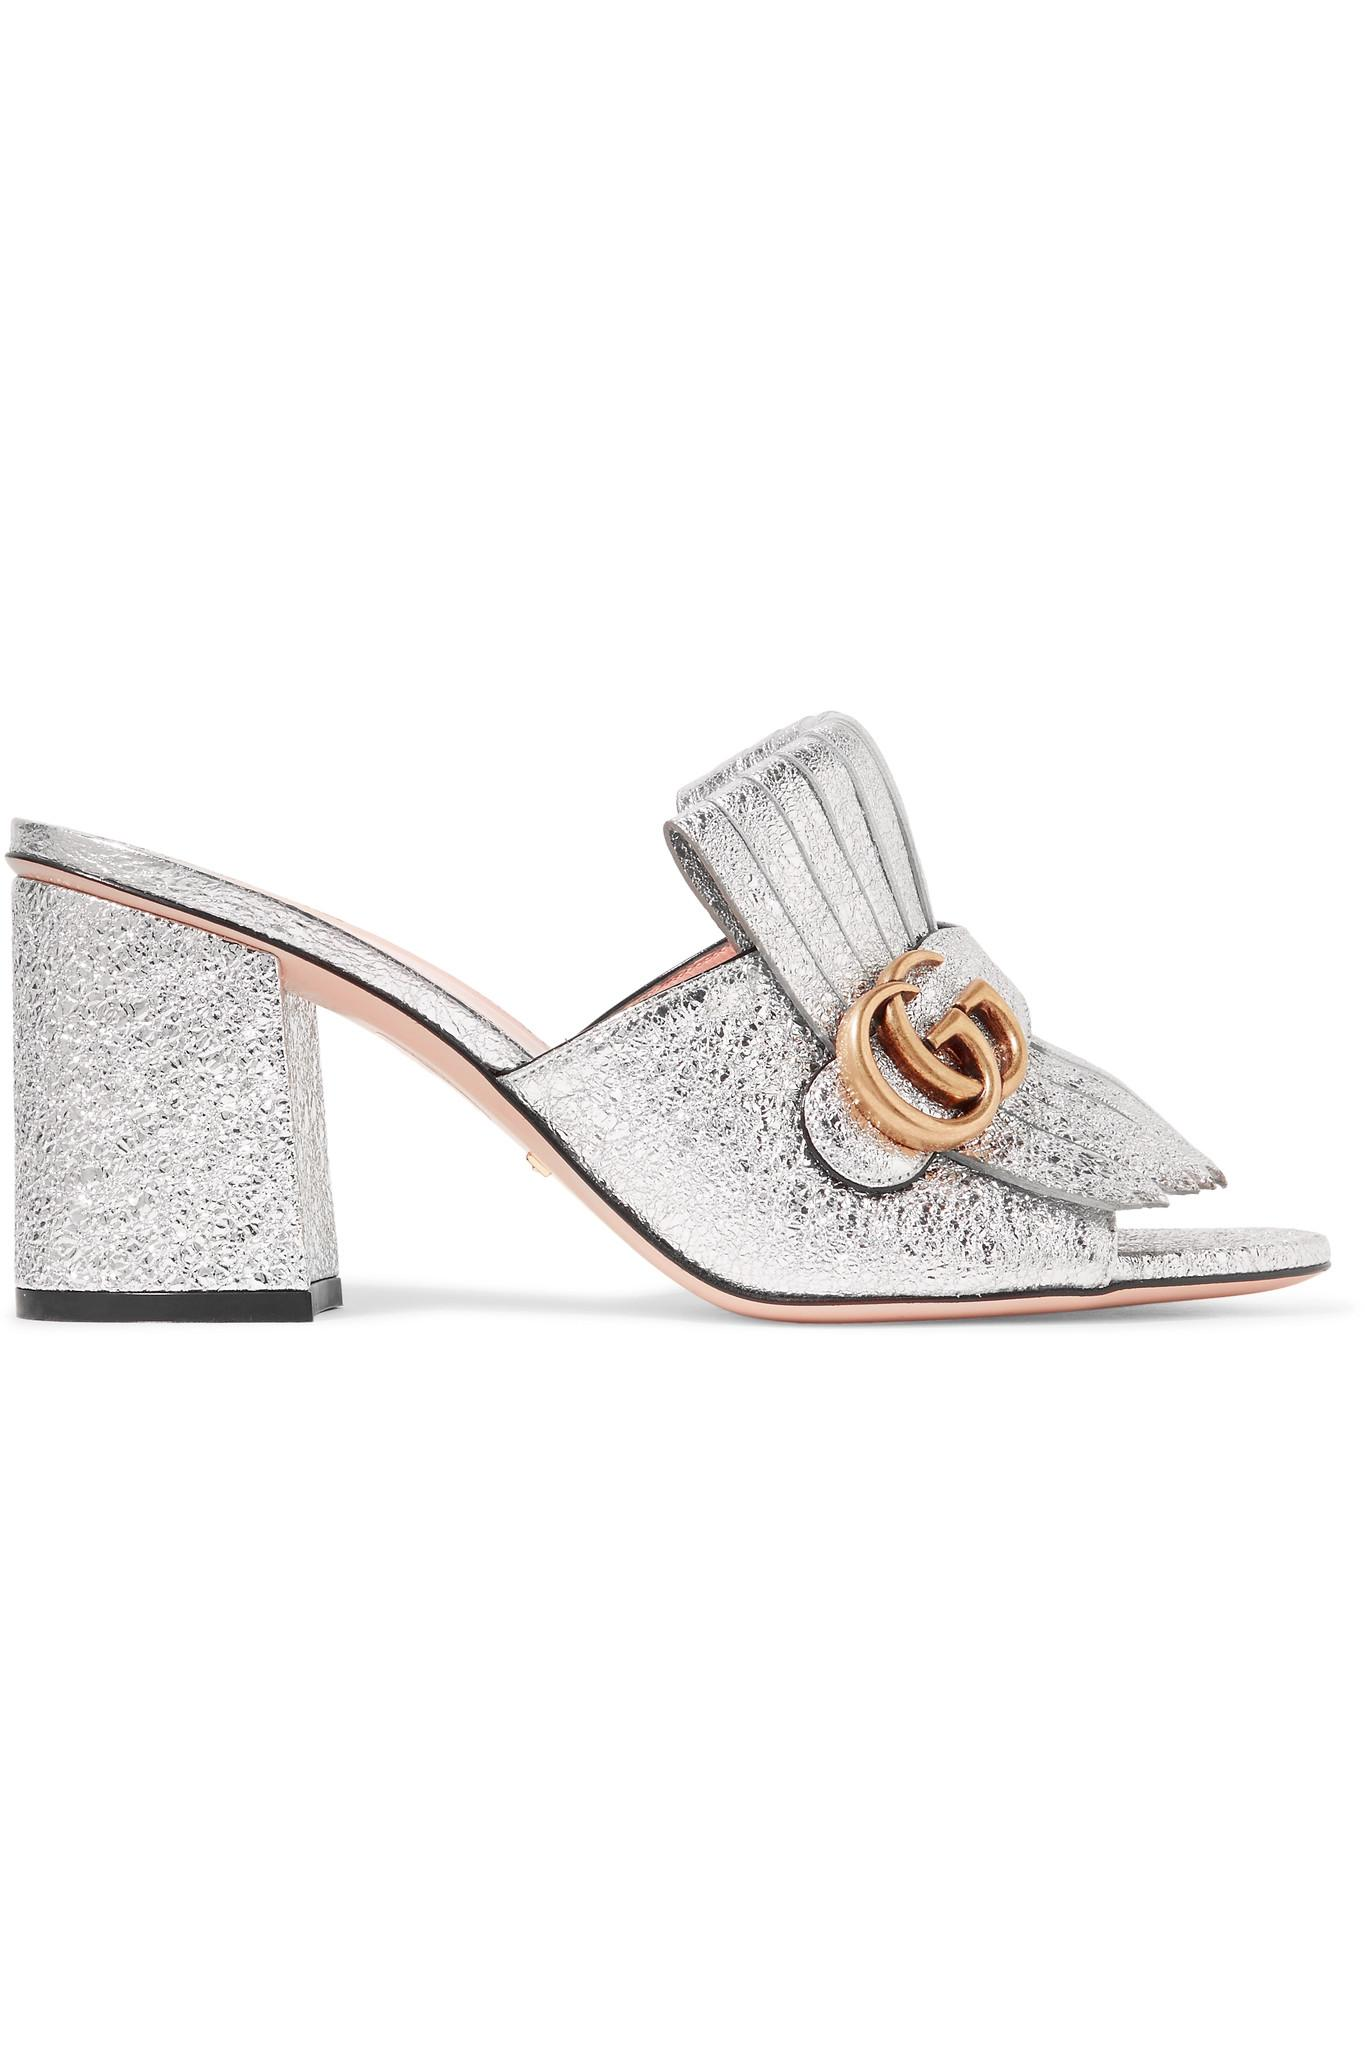 f5ada14fa90 Gucci. Women s Marmont Fringed Logo-embellished Metallic Cracked-leather  Mules